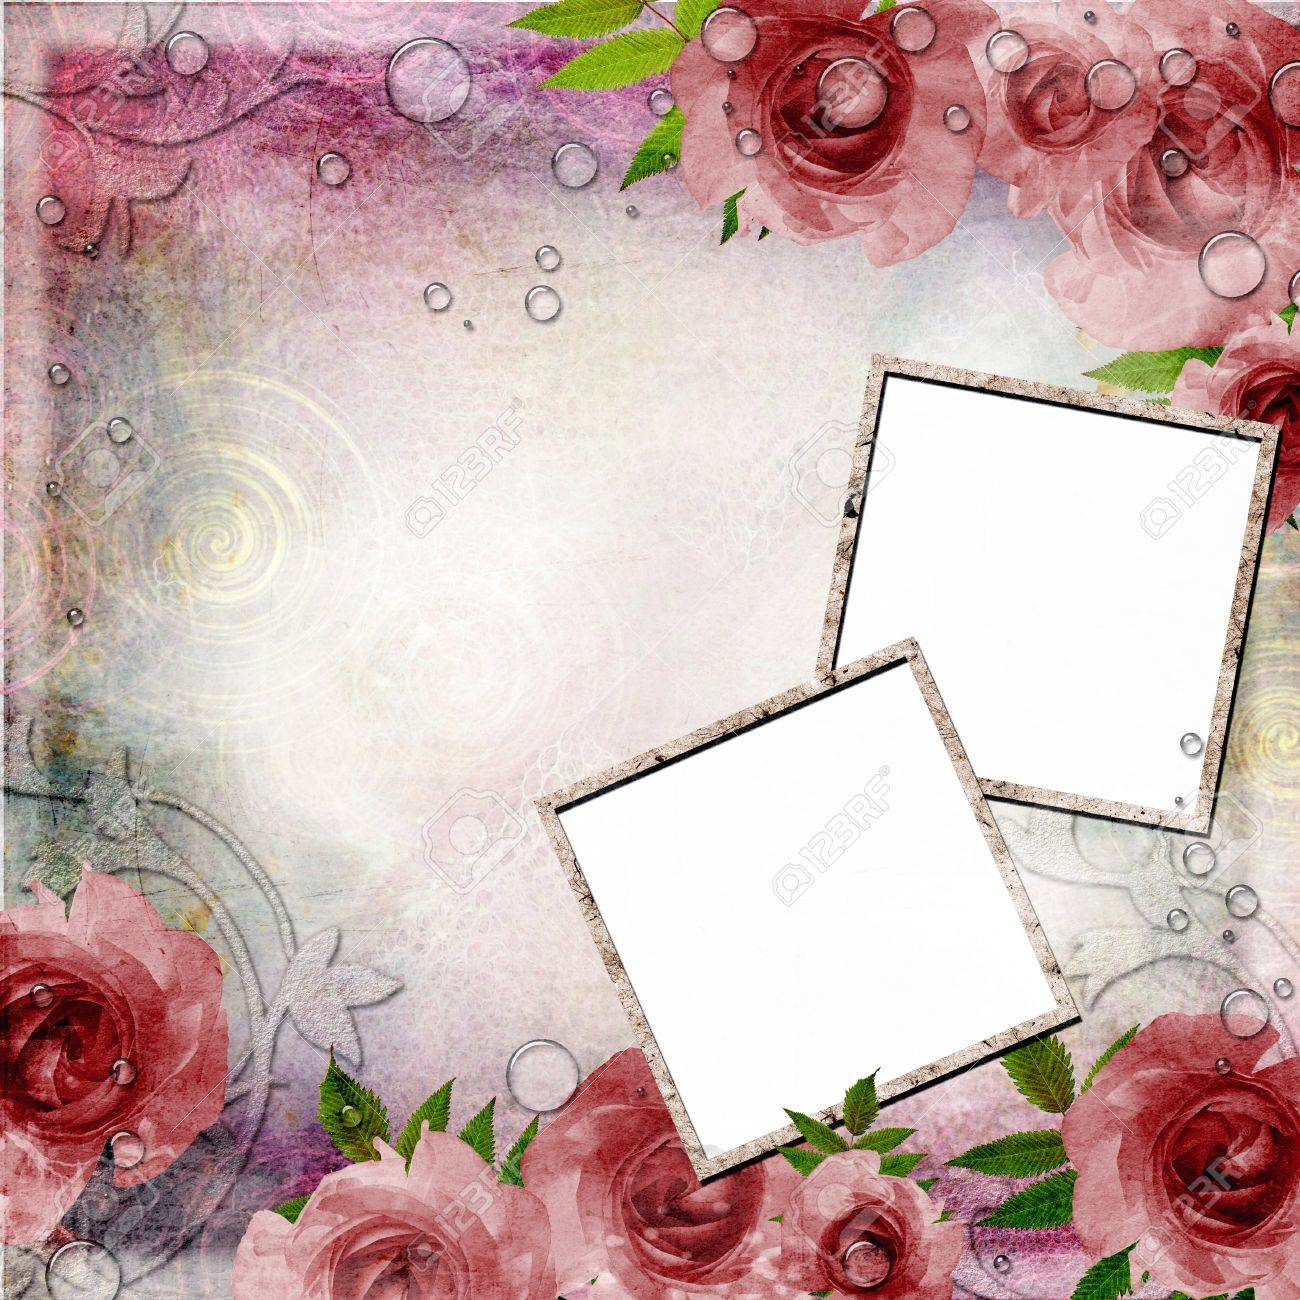 Vintage pink and green background with frames and roses 1 vintage pink and green background with frames and roses 1 of set stock photo jeuxipadfo Images